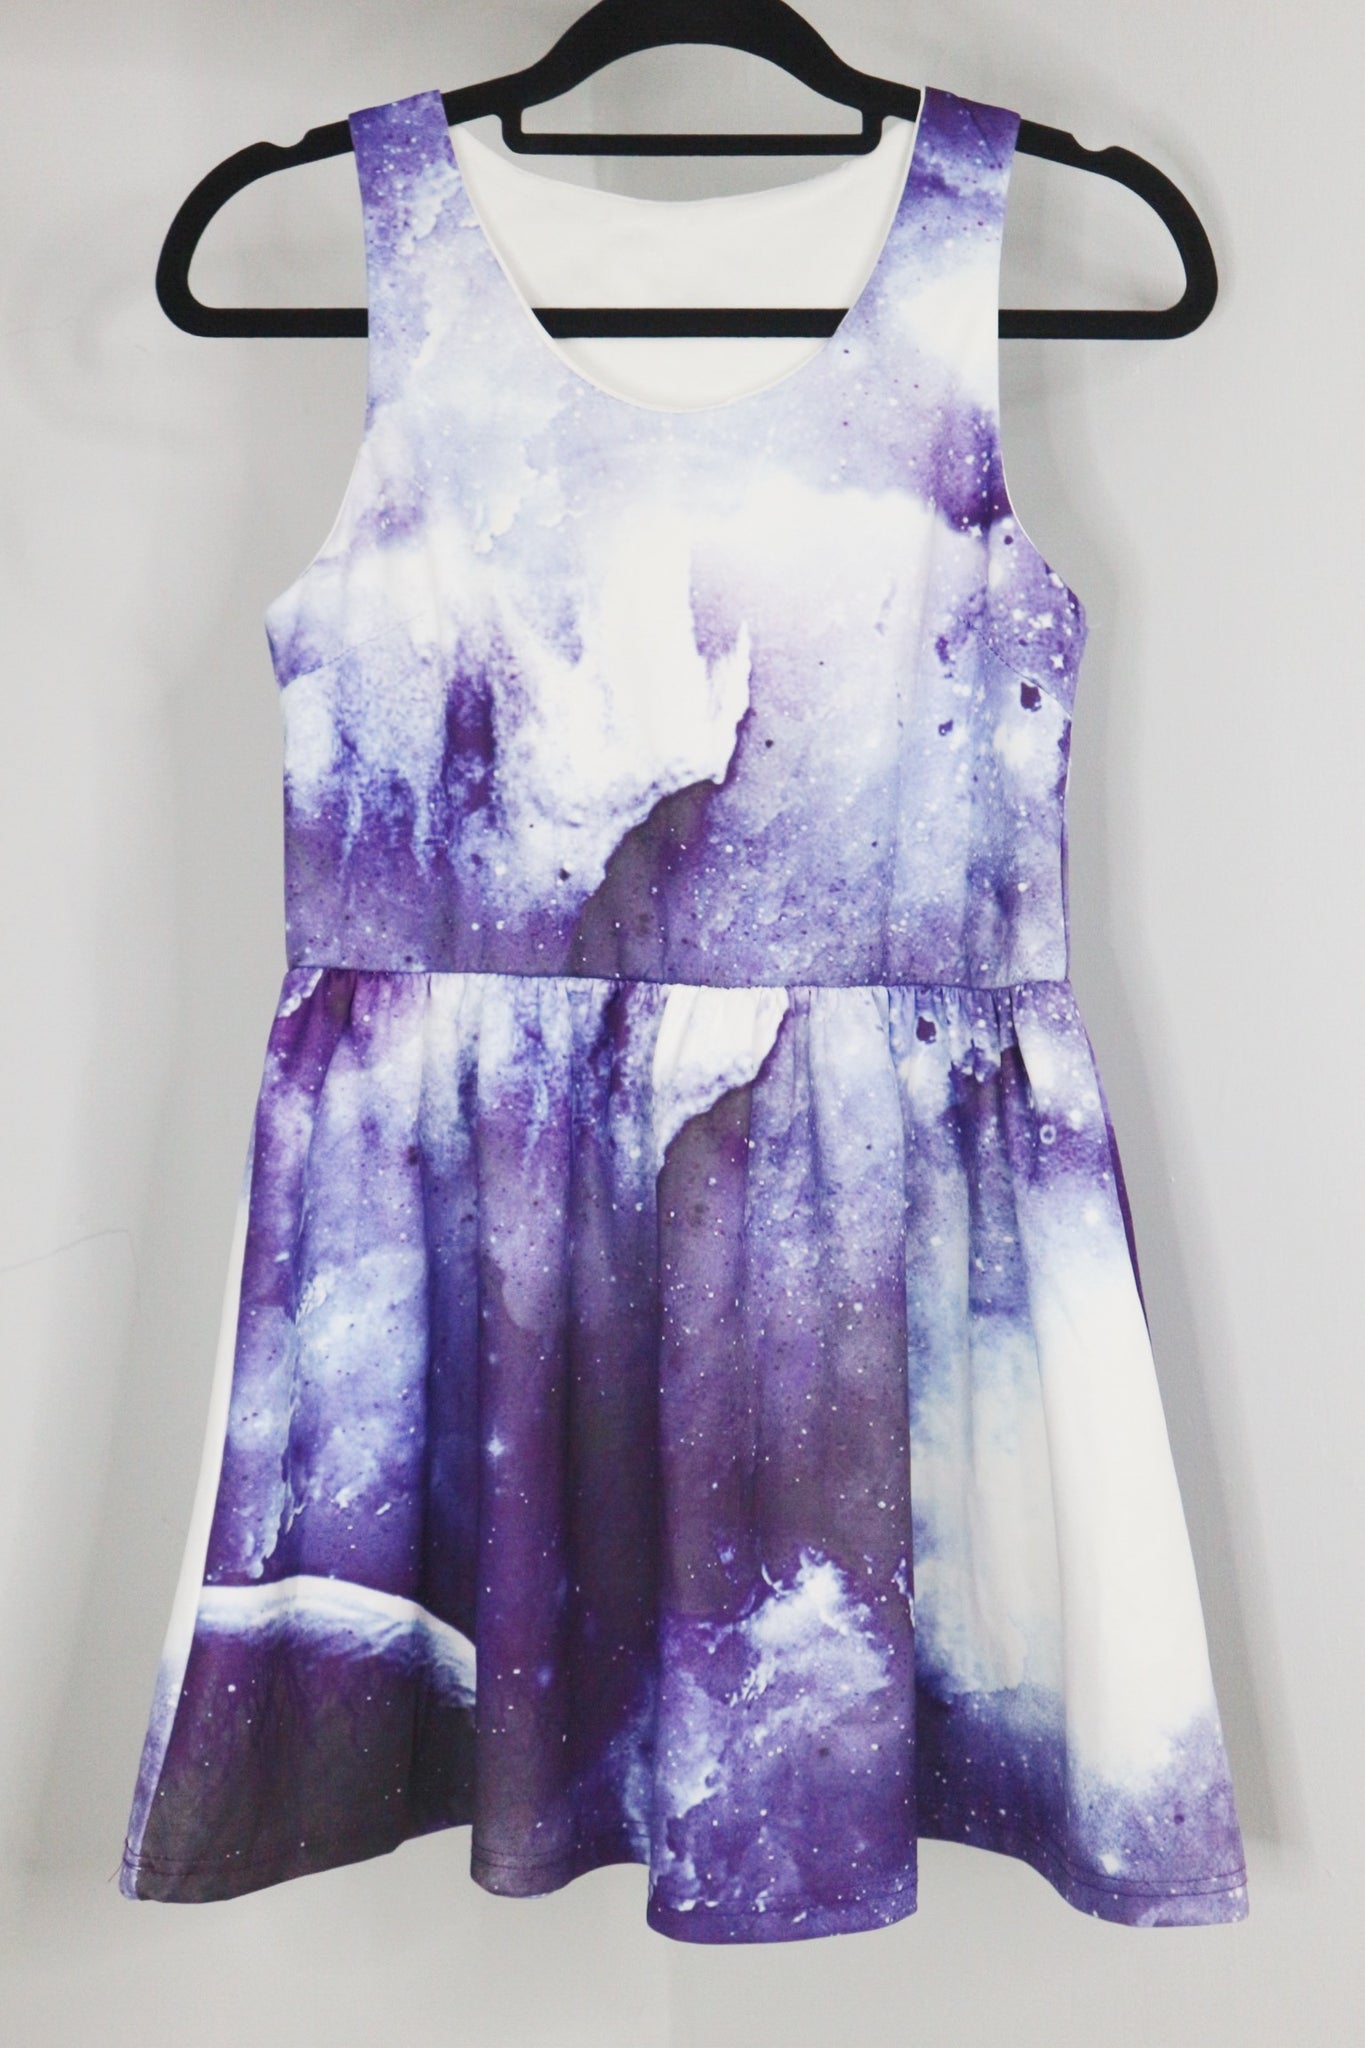 NA white and violet galaxy sleeveless dress